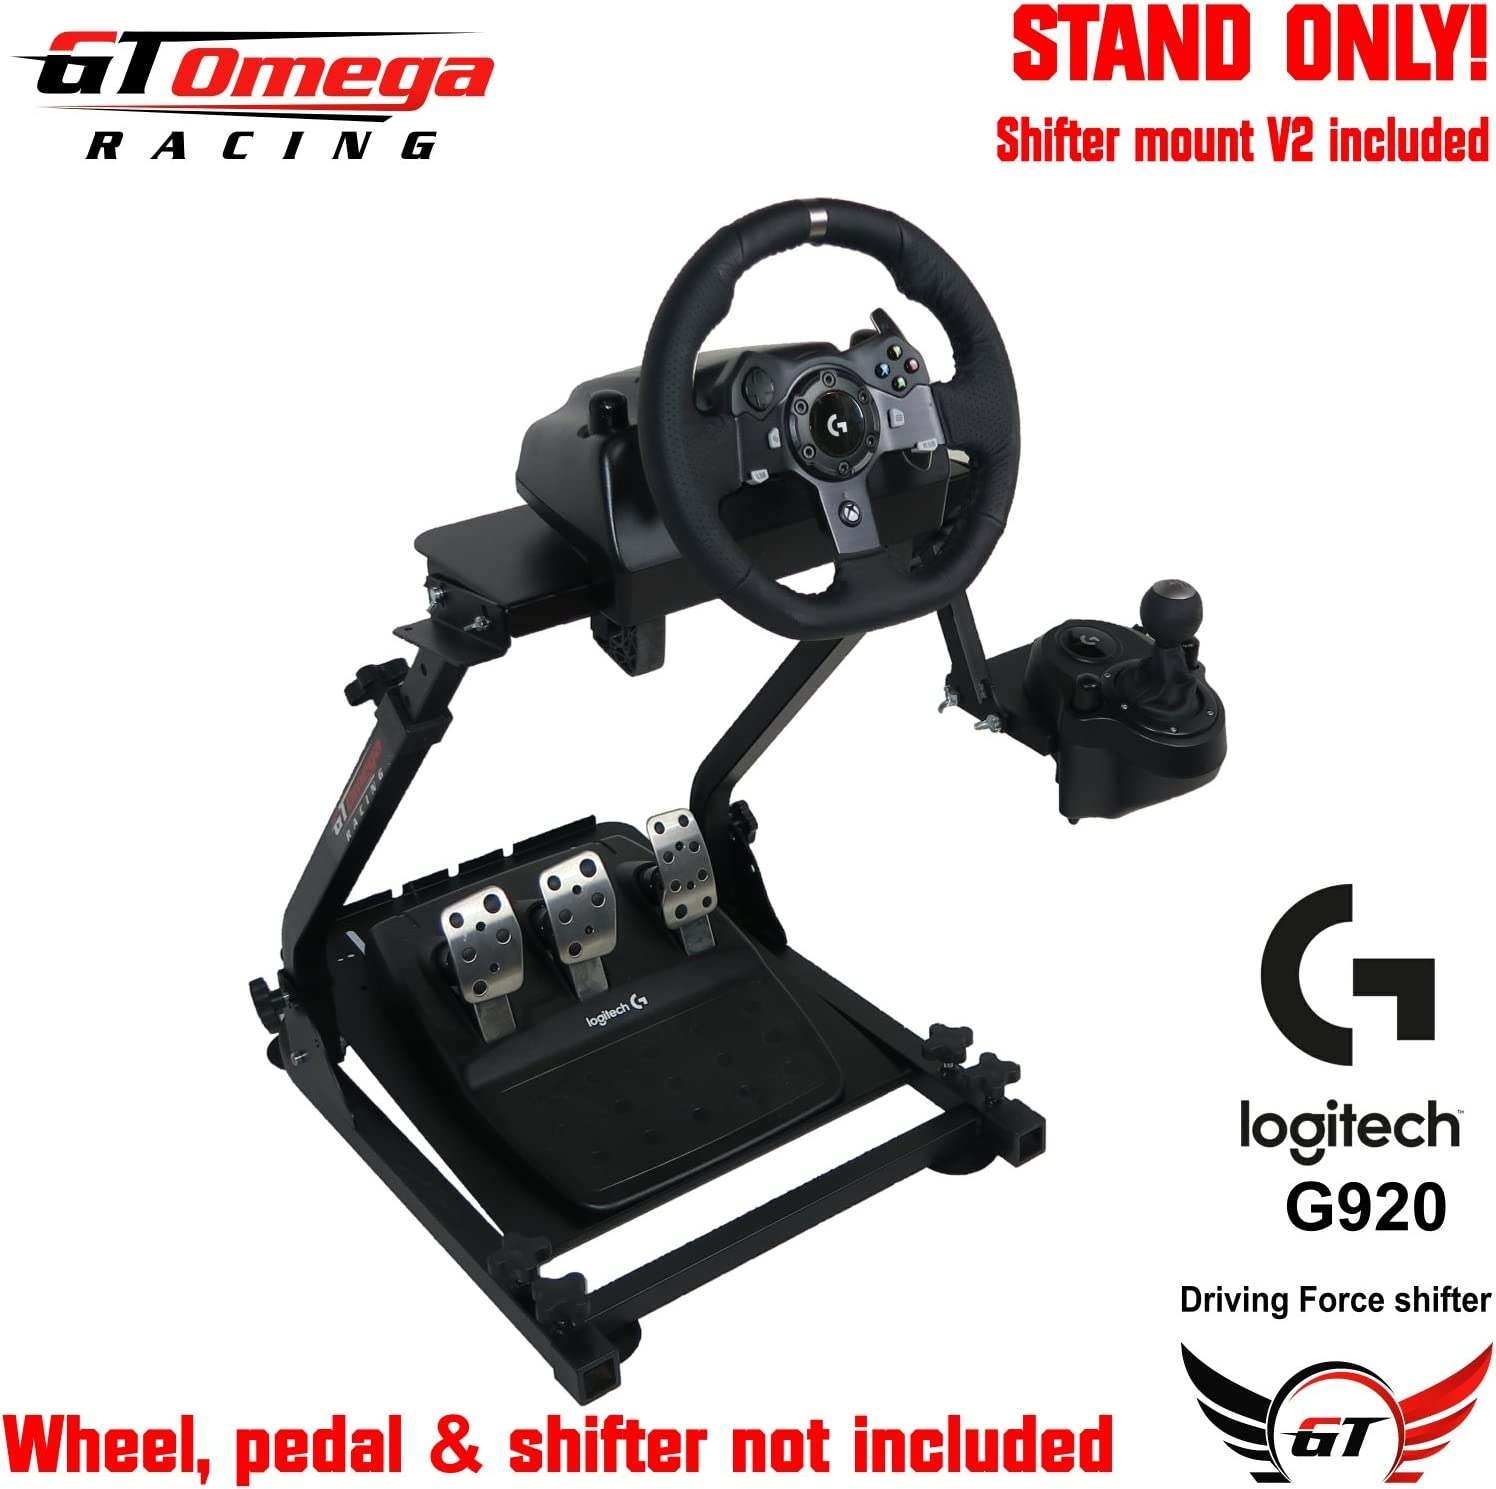 0cd693d4877 GT Omega Racing Wheel Stand for Logitech G920 Driving Force Gaming Steering  Wheel, Pedals & Gear Shifter Mount V2, PS4, Xbox, Ferrari, PC - Foldable,  ...